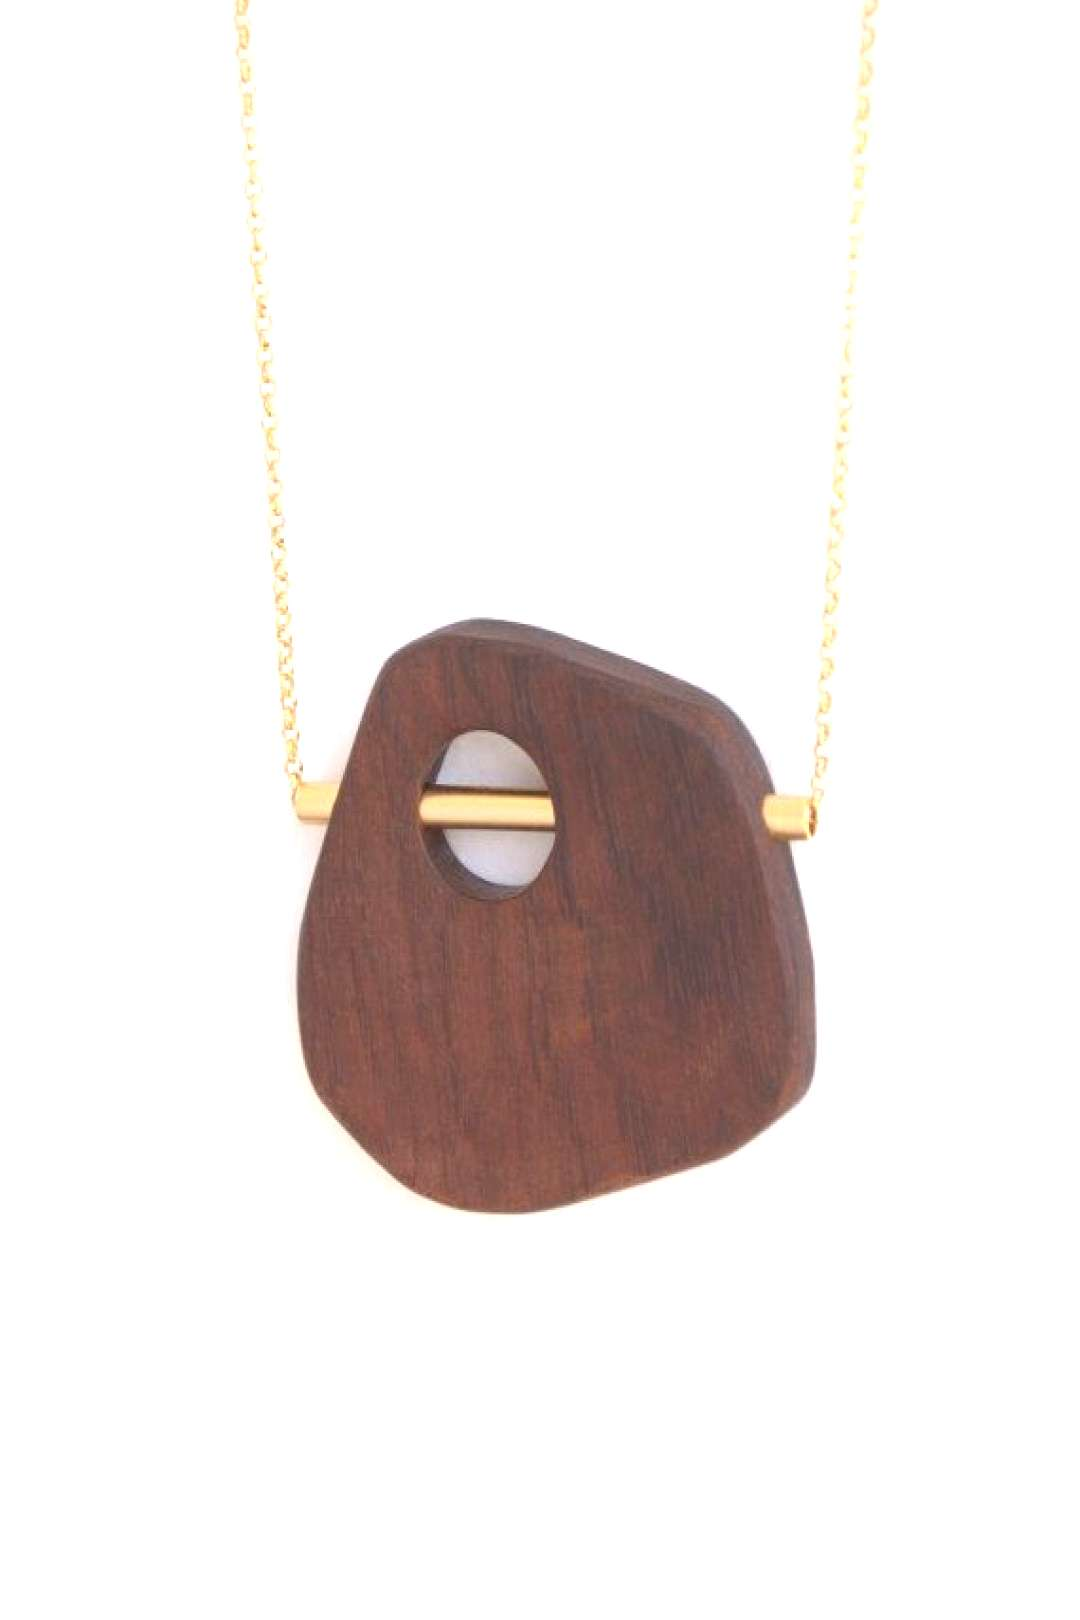 LOOK 1 gold wood pendant necklace and by closeupjewelry on Etsy, $110.00